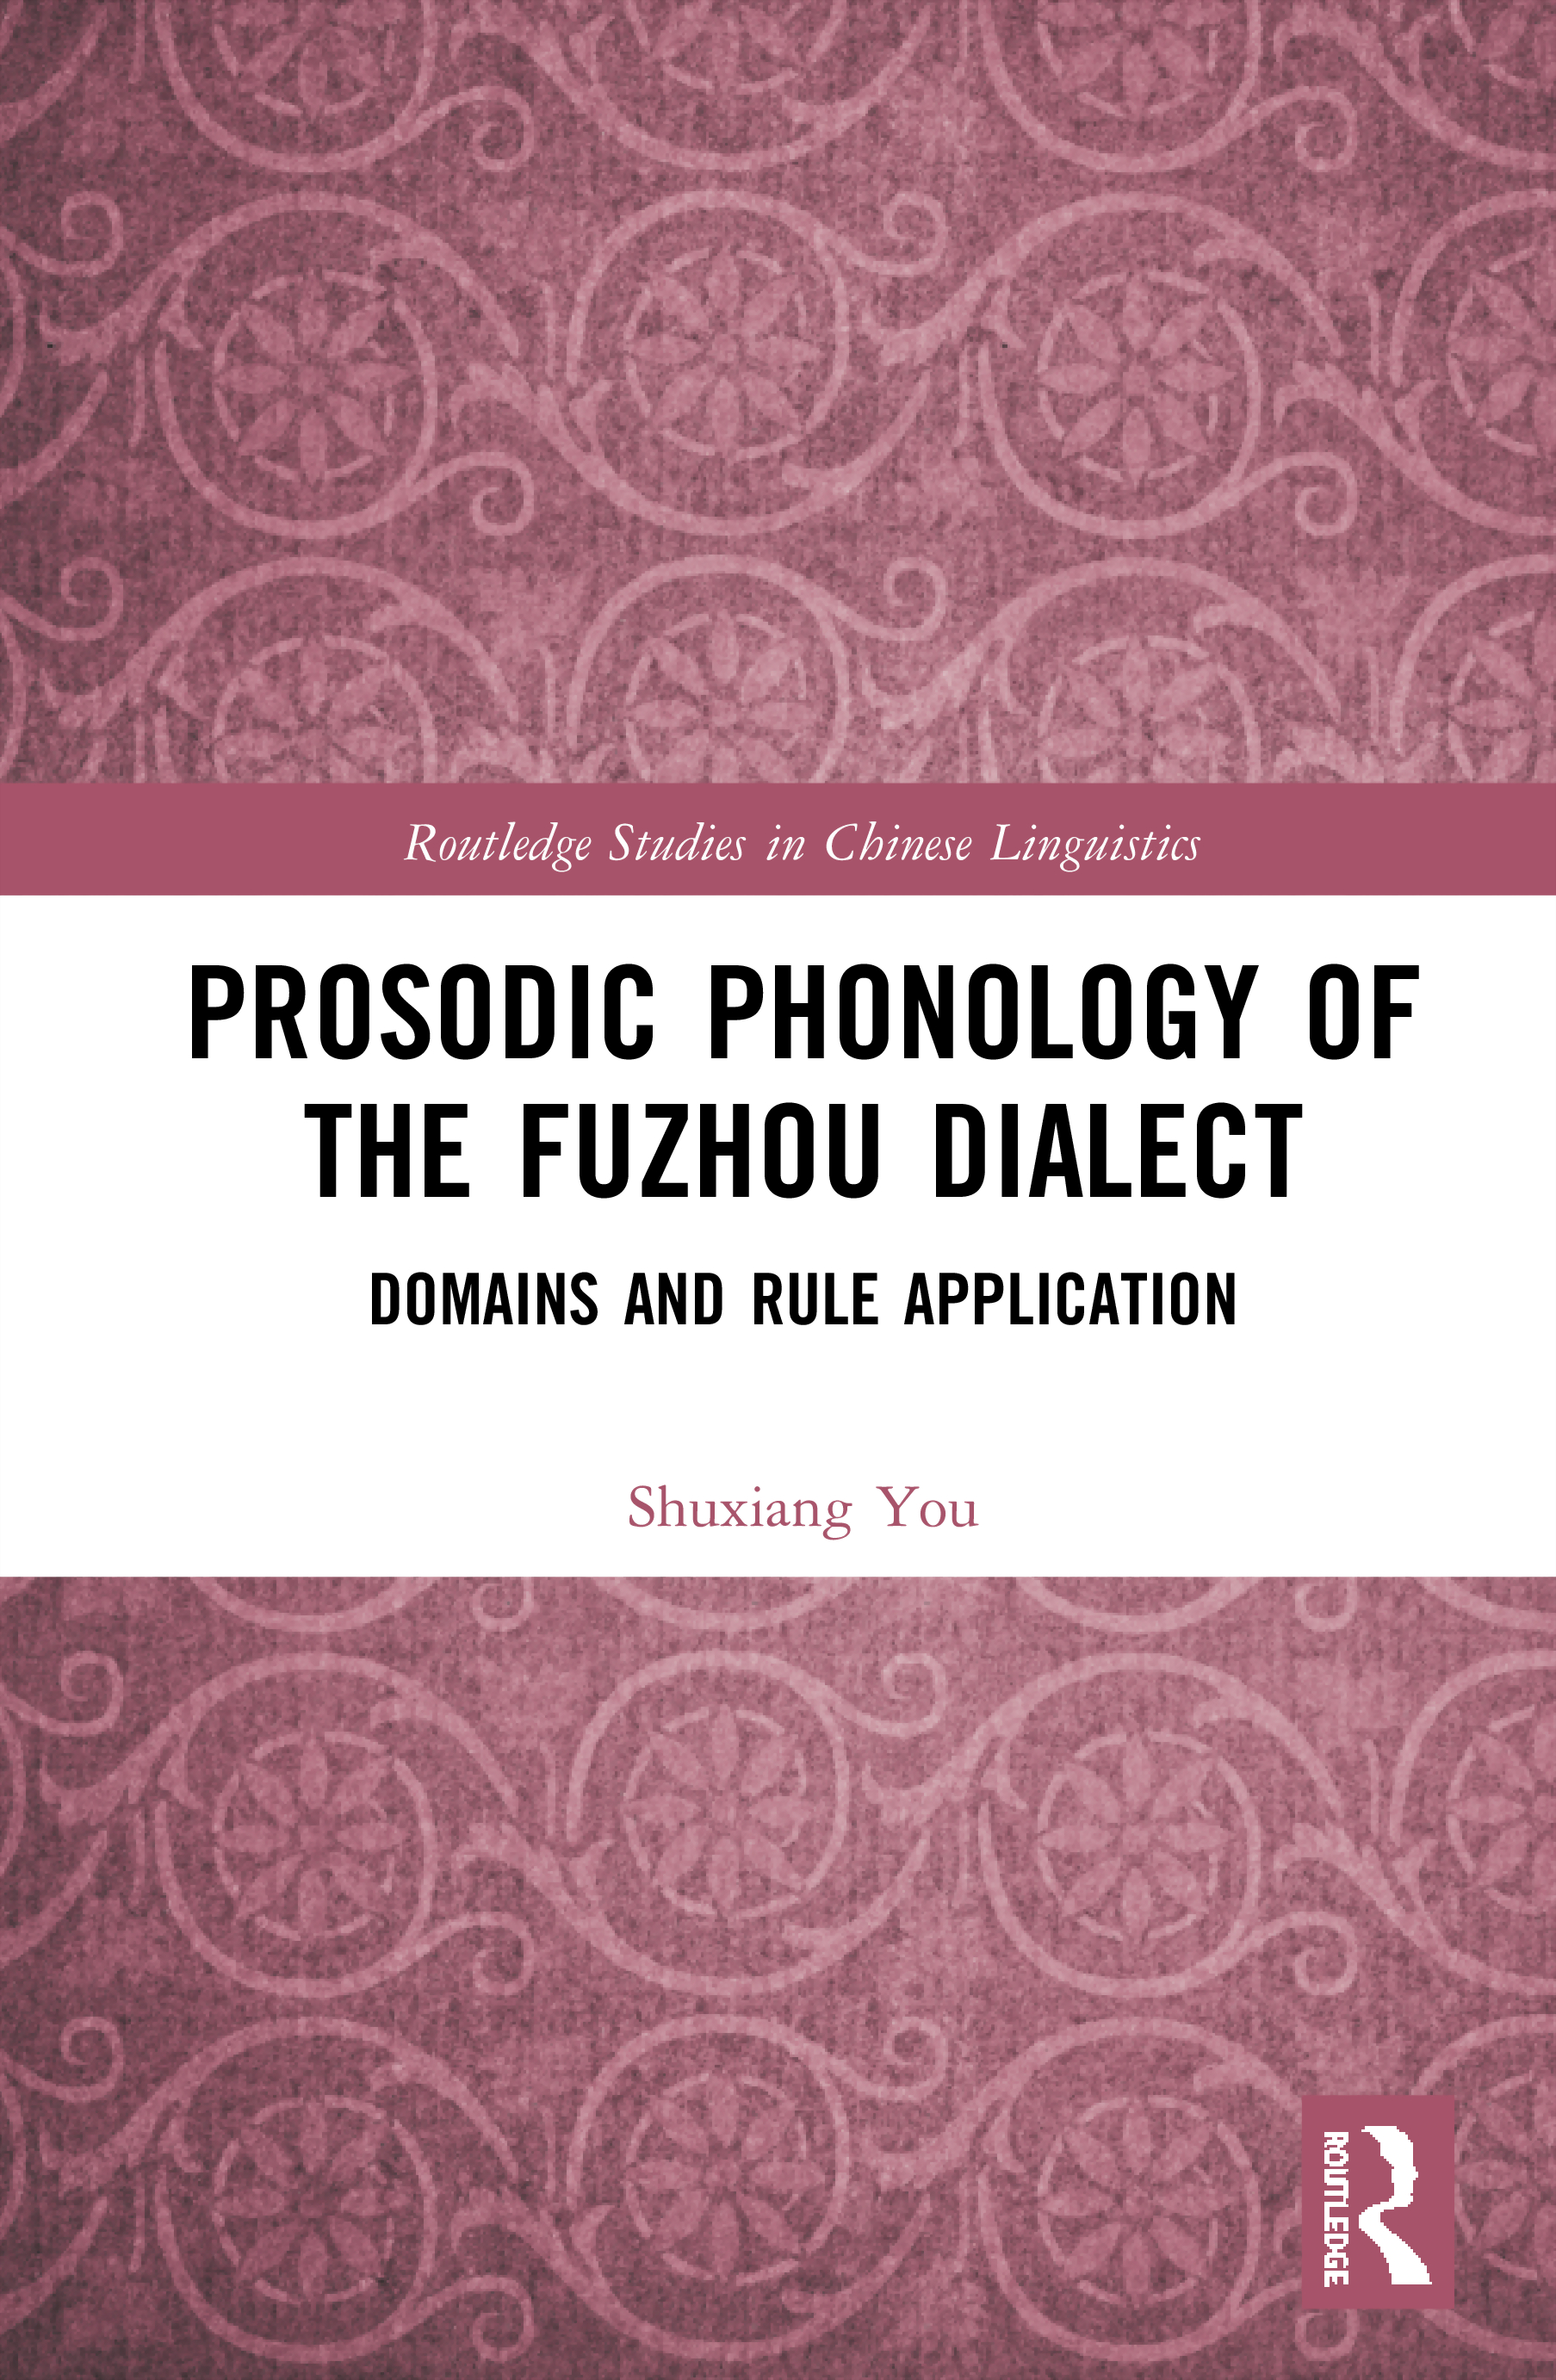 Prosodic Phonology of the Fuzhou Dialect: Domains and Rule Application book cover